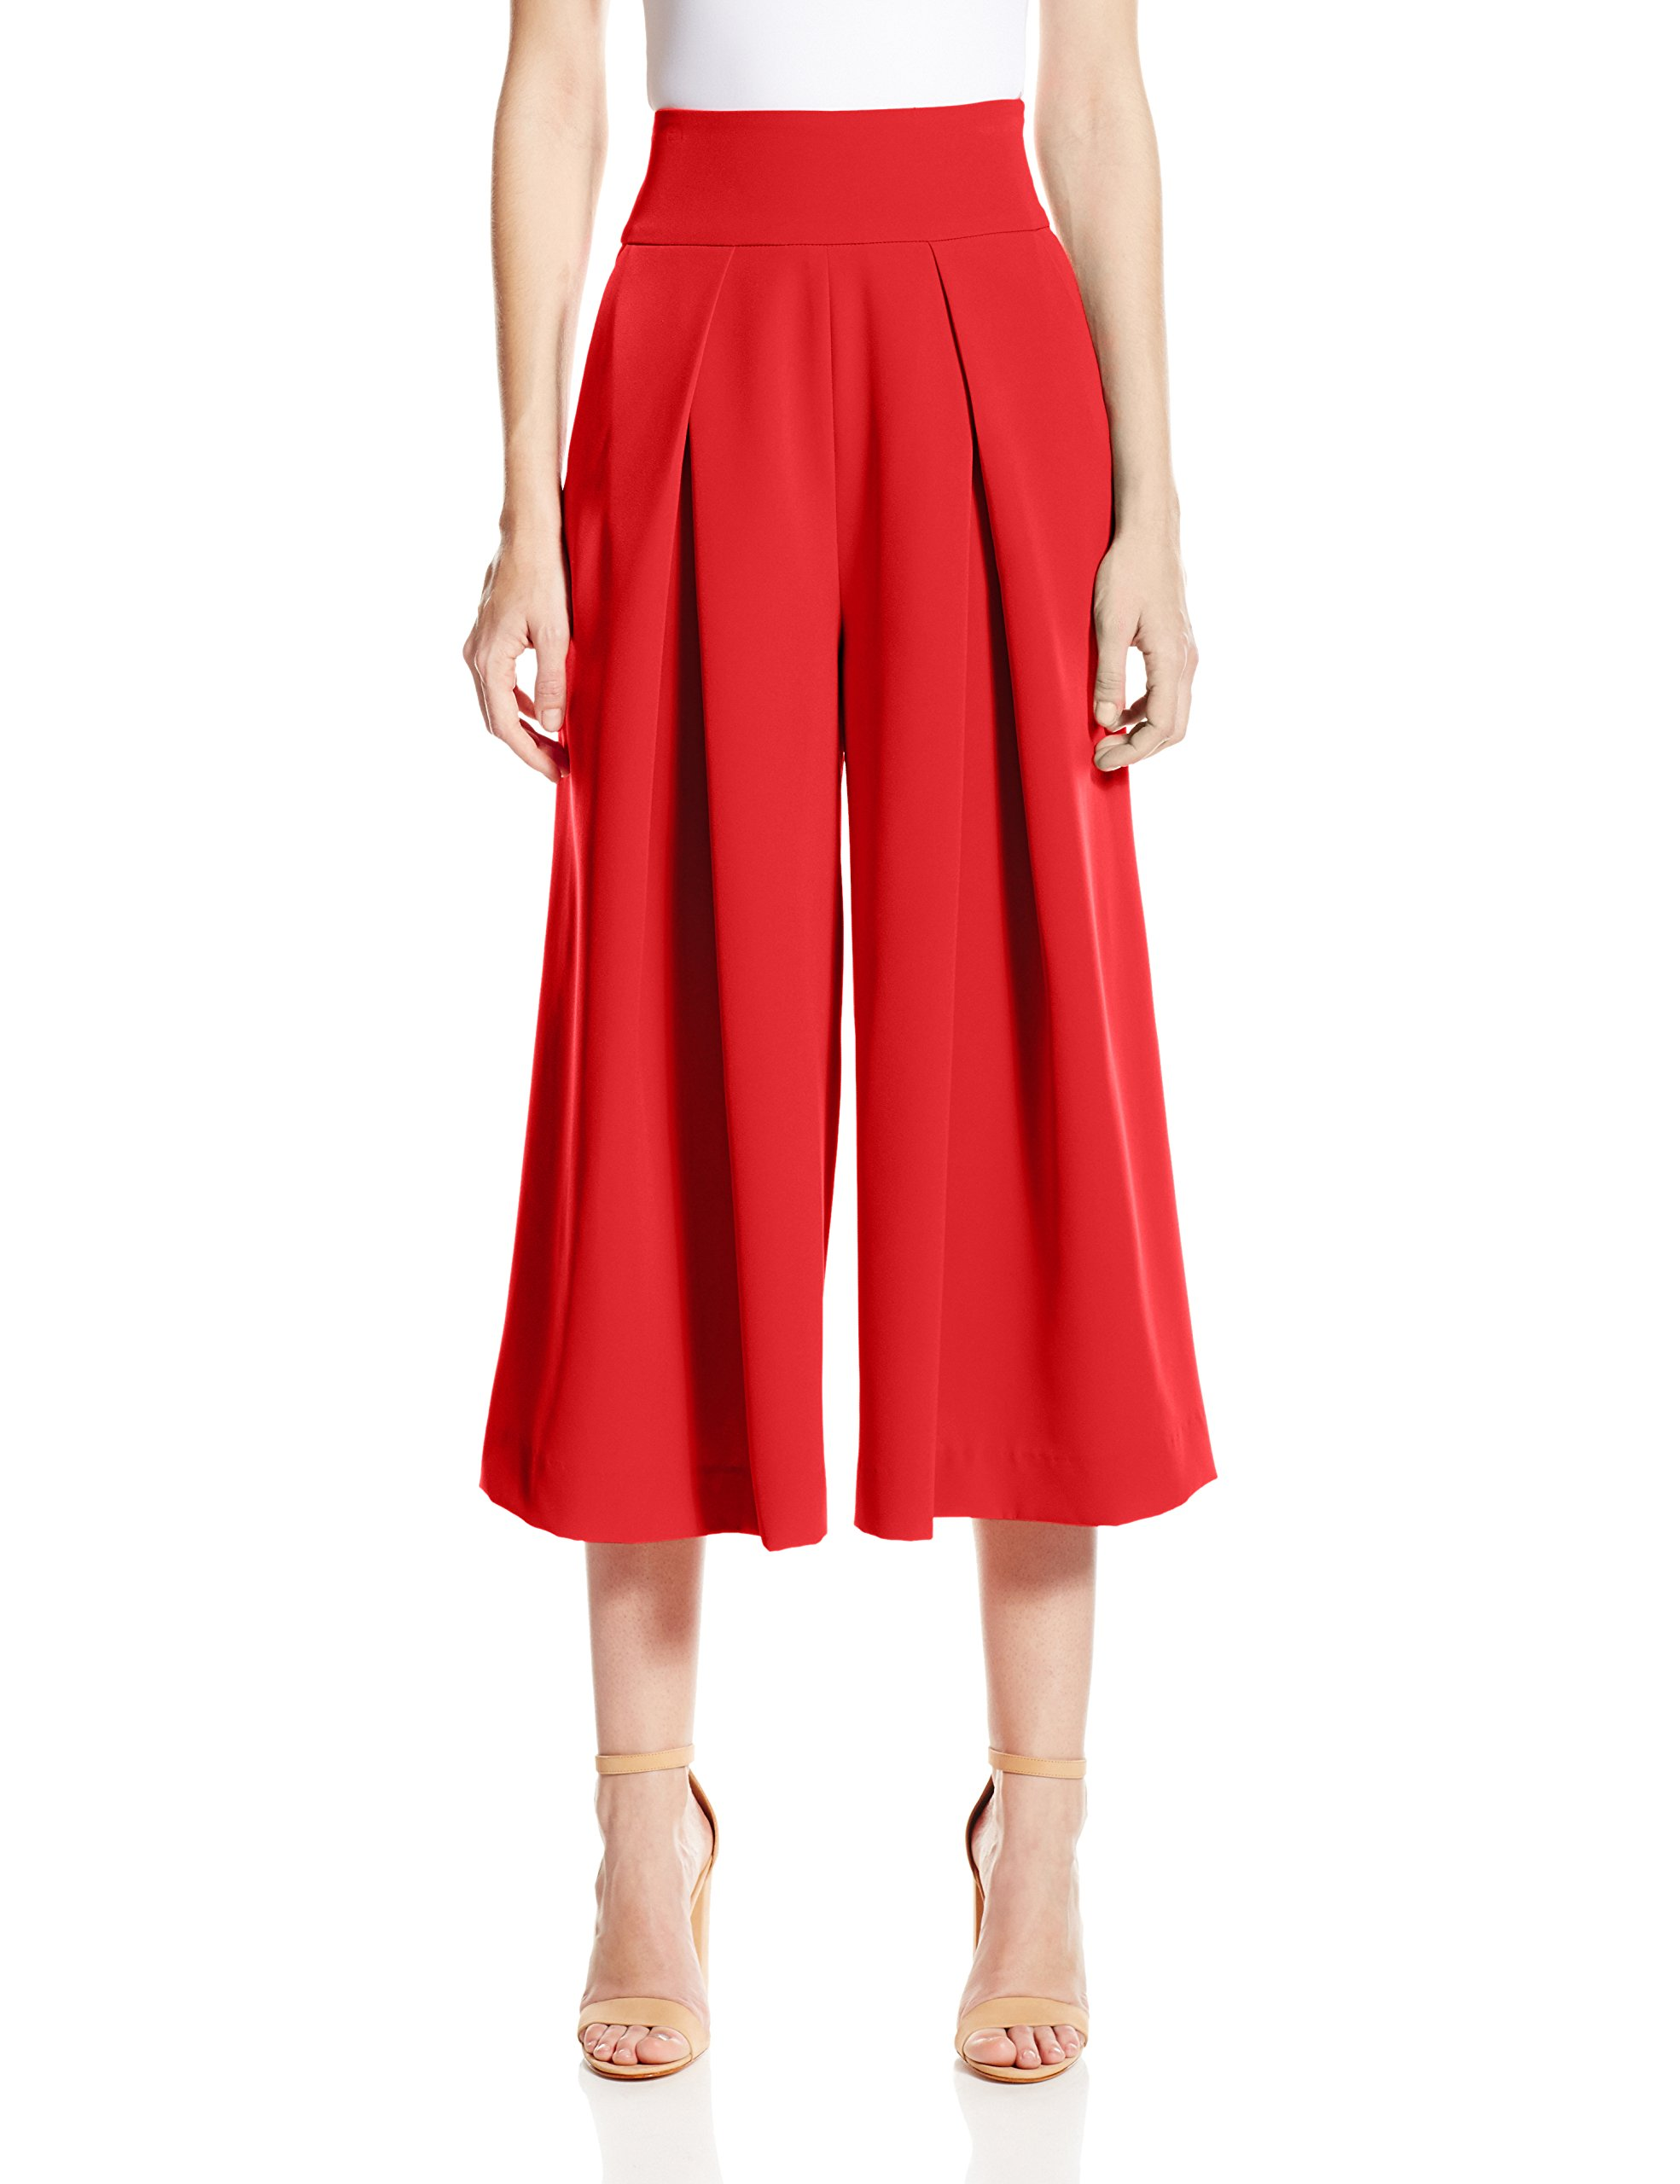 Milly Women's Italian Cady Culotte, Flame, 12